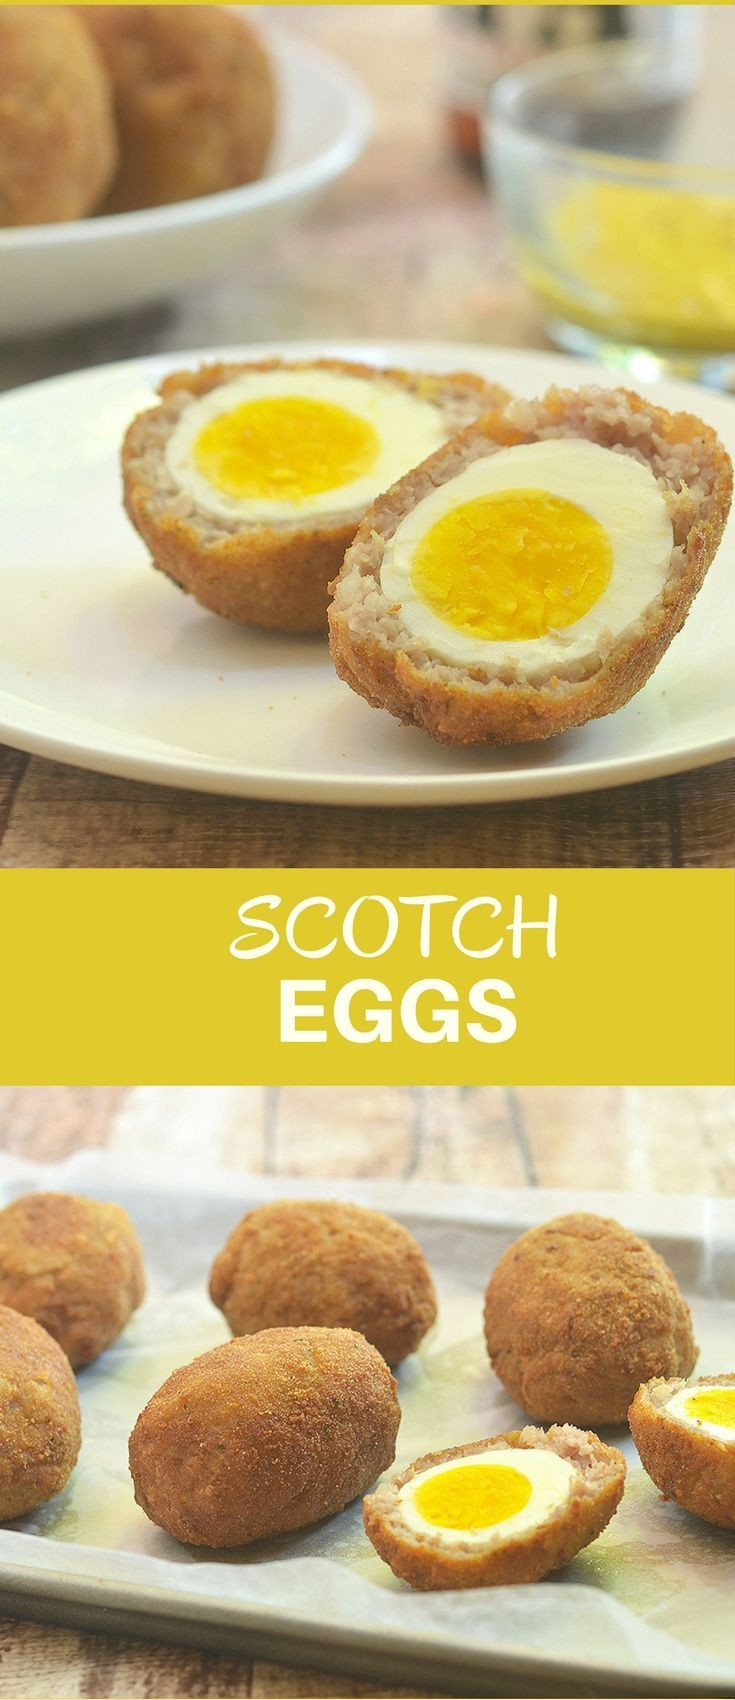 Scotch eggs wrapped in spicy sausage, breaded, and deep-fried to golden perfection are the perfect appetizer, picnic food or portable snack on-to-go.